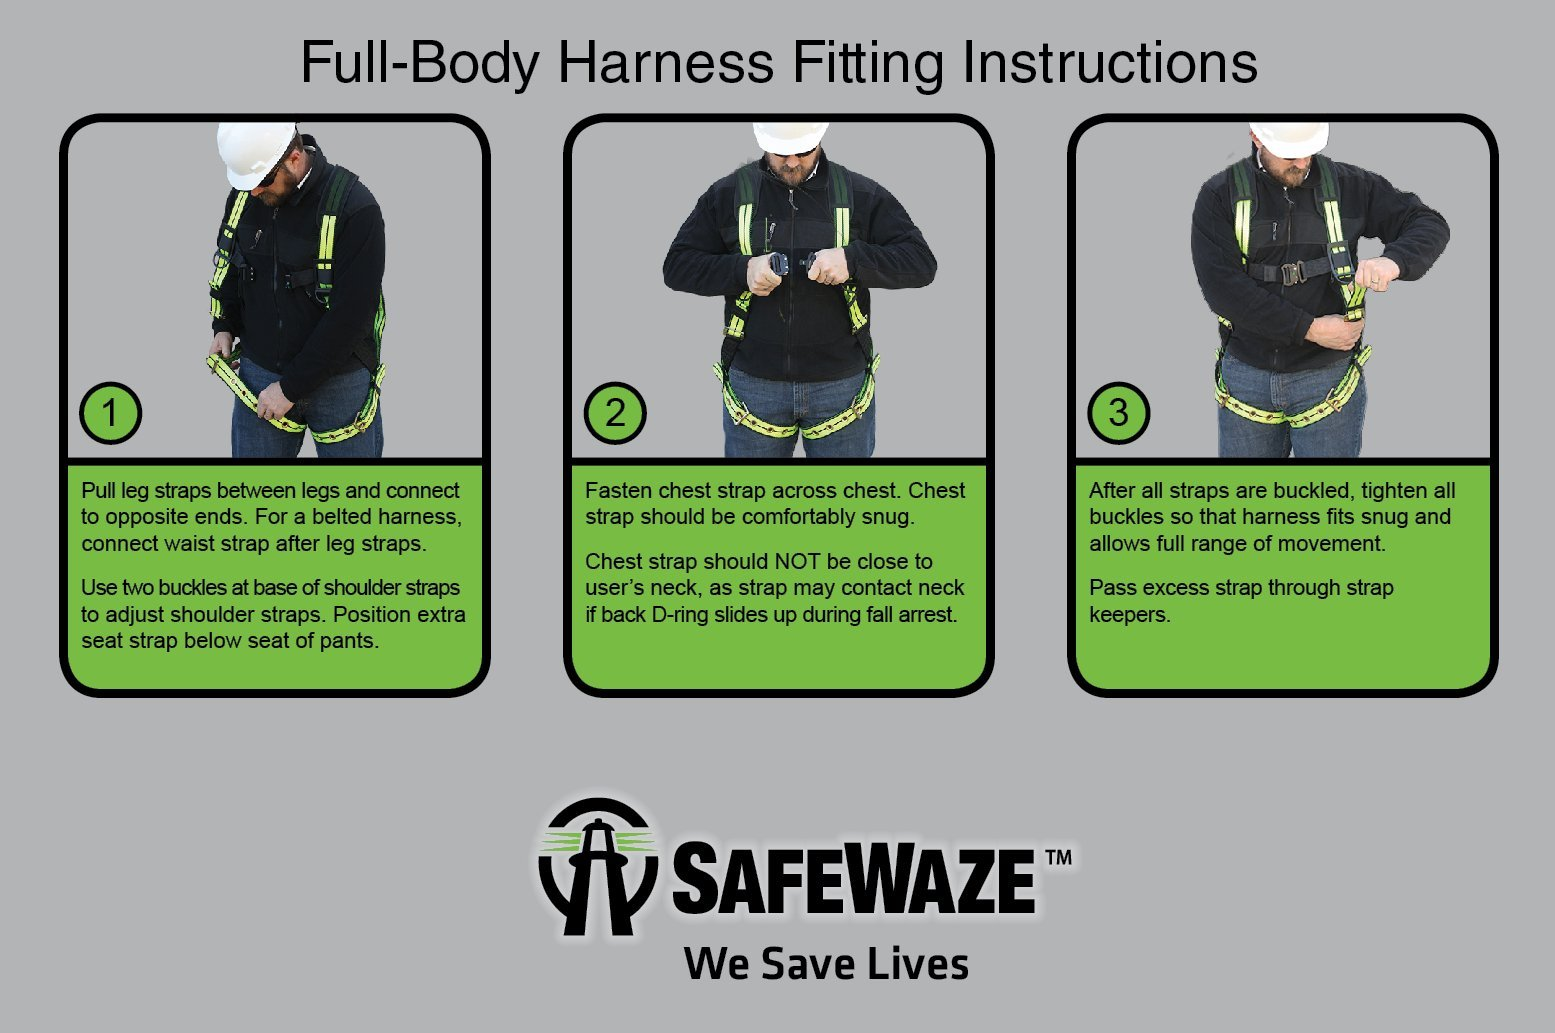 SafeWaze V-LINE Fall Protection Roofing Kit in a Bucket, Includes Safety Harness with Waist Belt, Rope with Rope Grab and Reusable Roof Anchor, OSHA/ANSI Compliant by SafeWaze